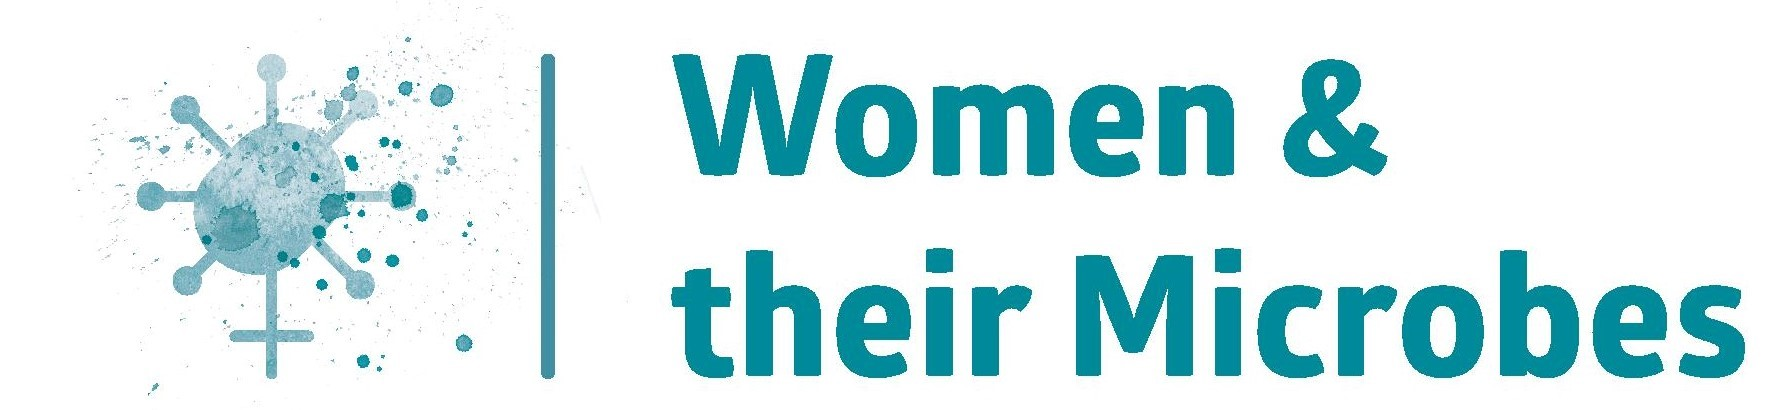 Women & their Microbes Logo